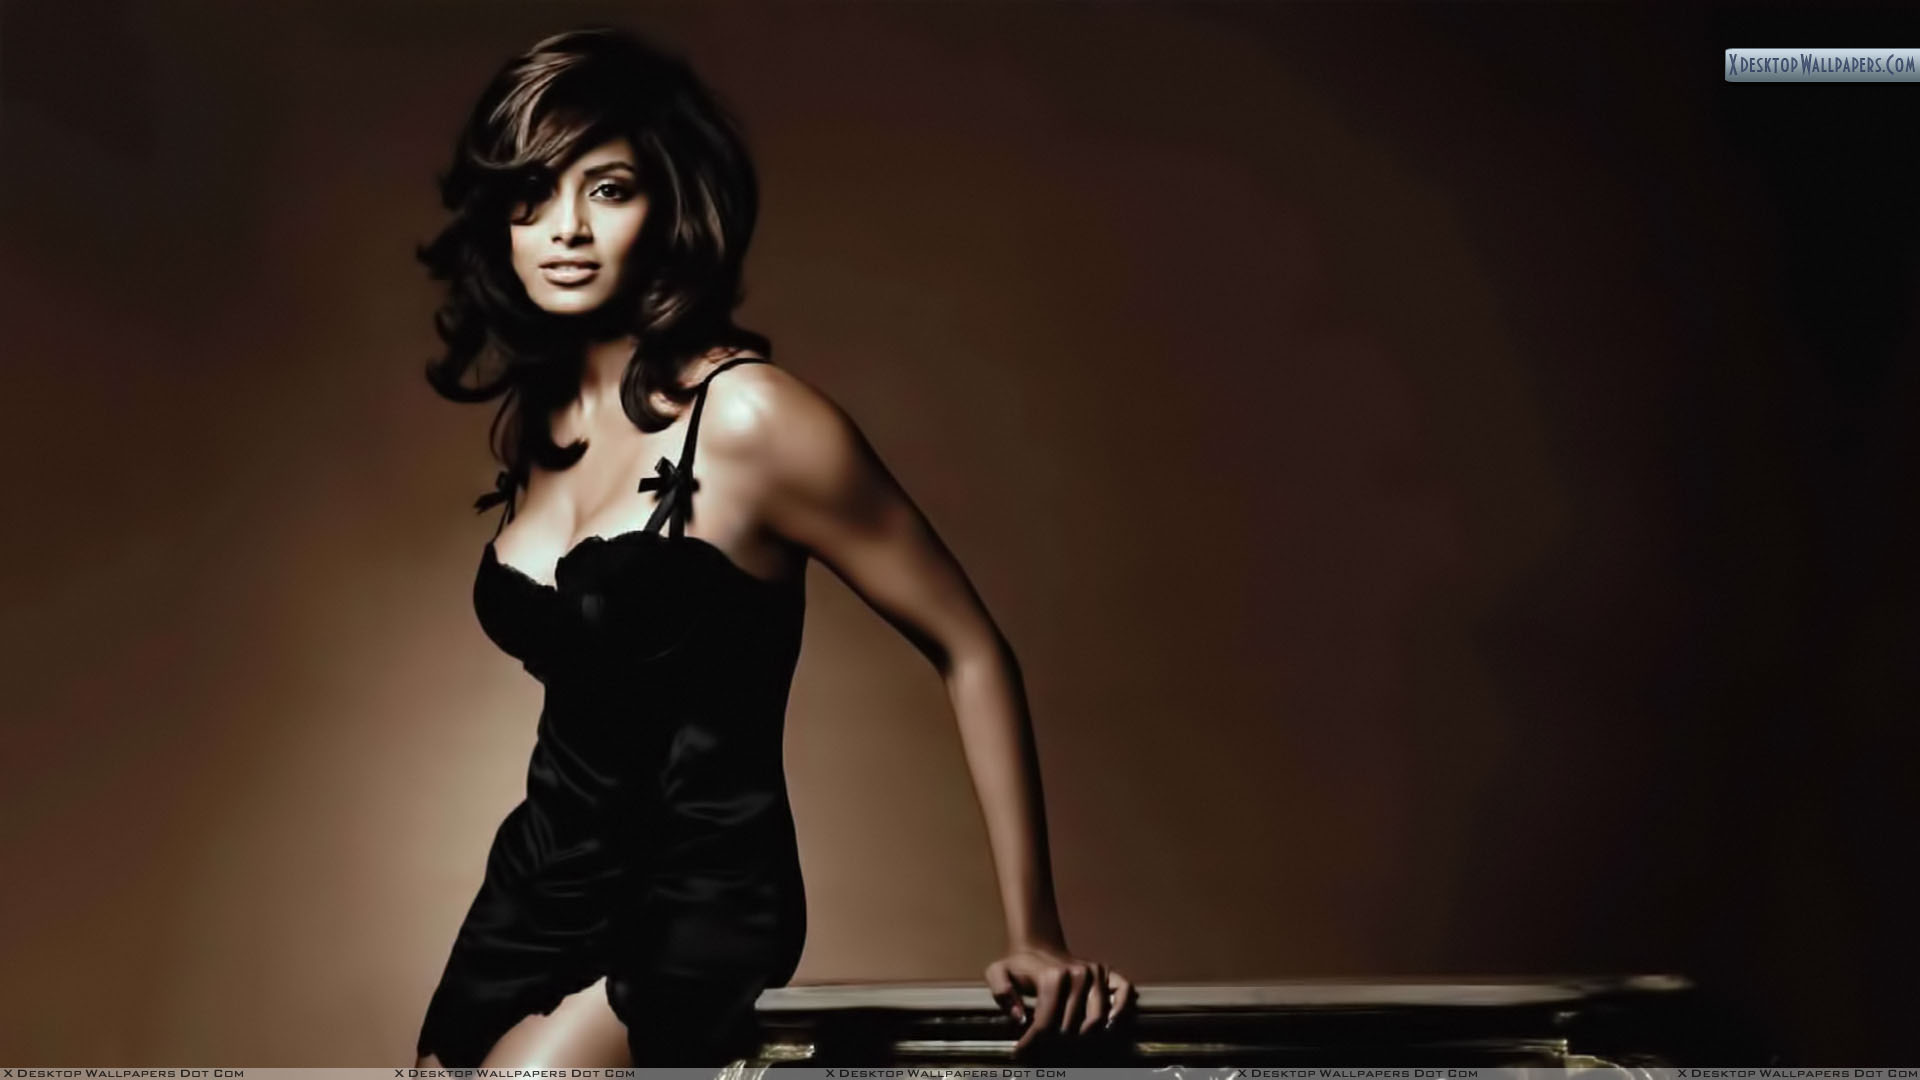 bipasha basu in black dress photoshoot wallpaper